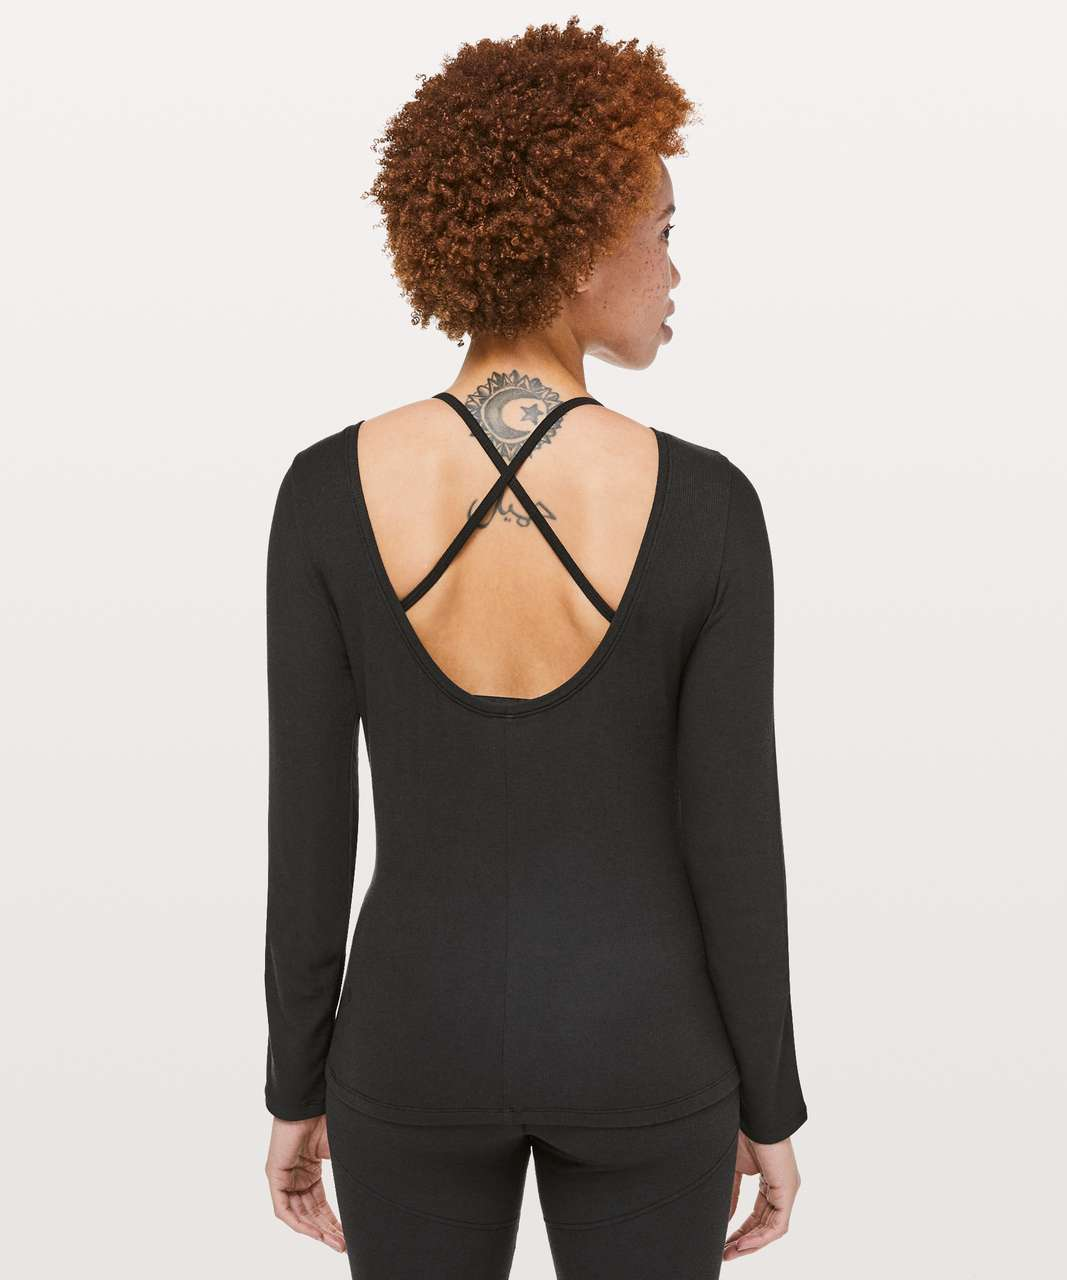 Lululemon Still Long Sleeve *lululemon lab - Black